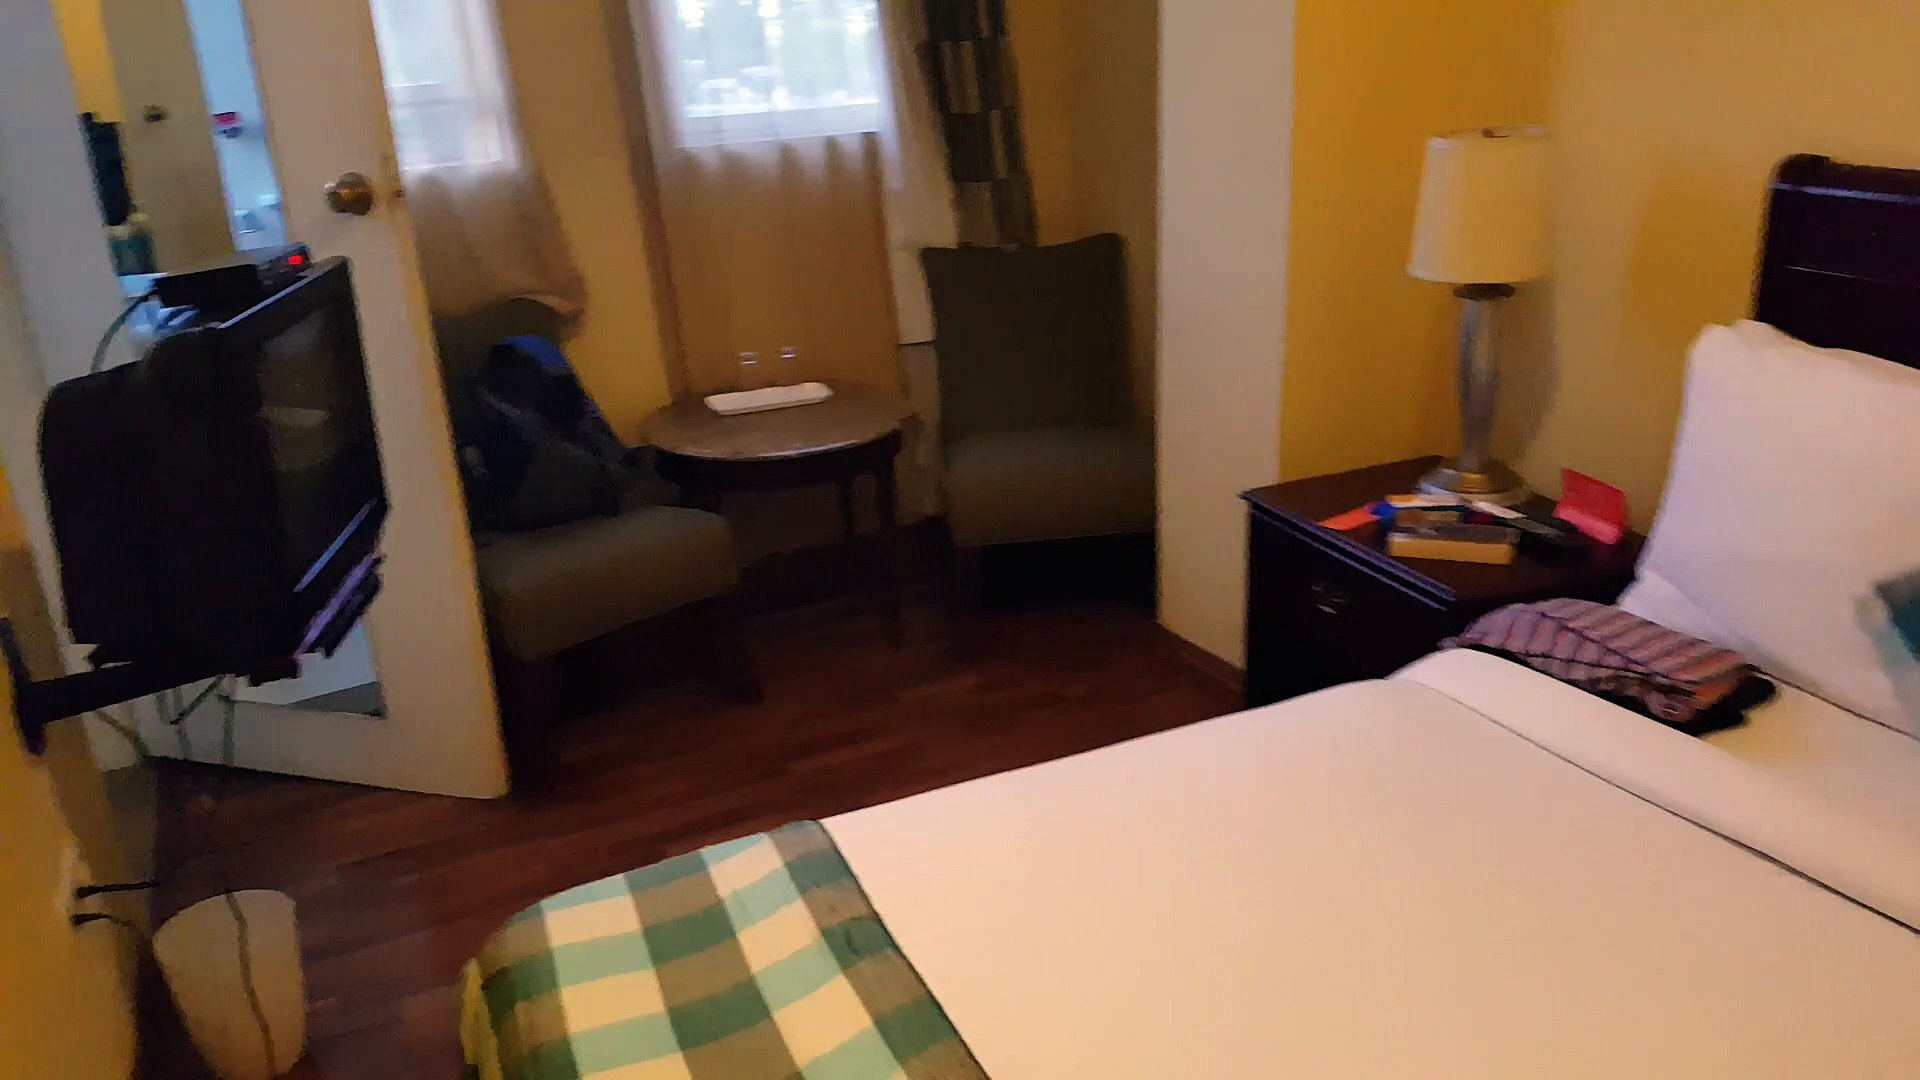 Room in the Addis Regency Hotel in Addis Ababa, Ethiopia